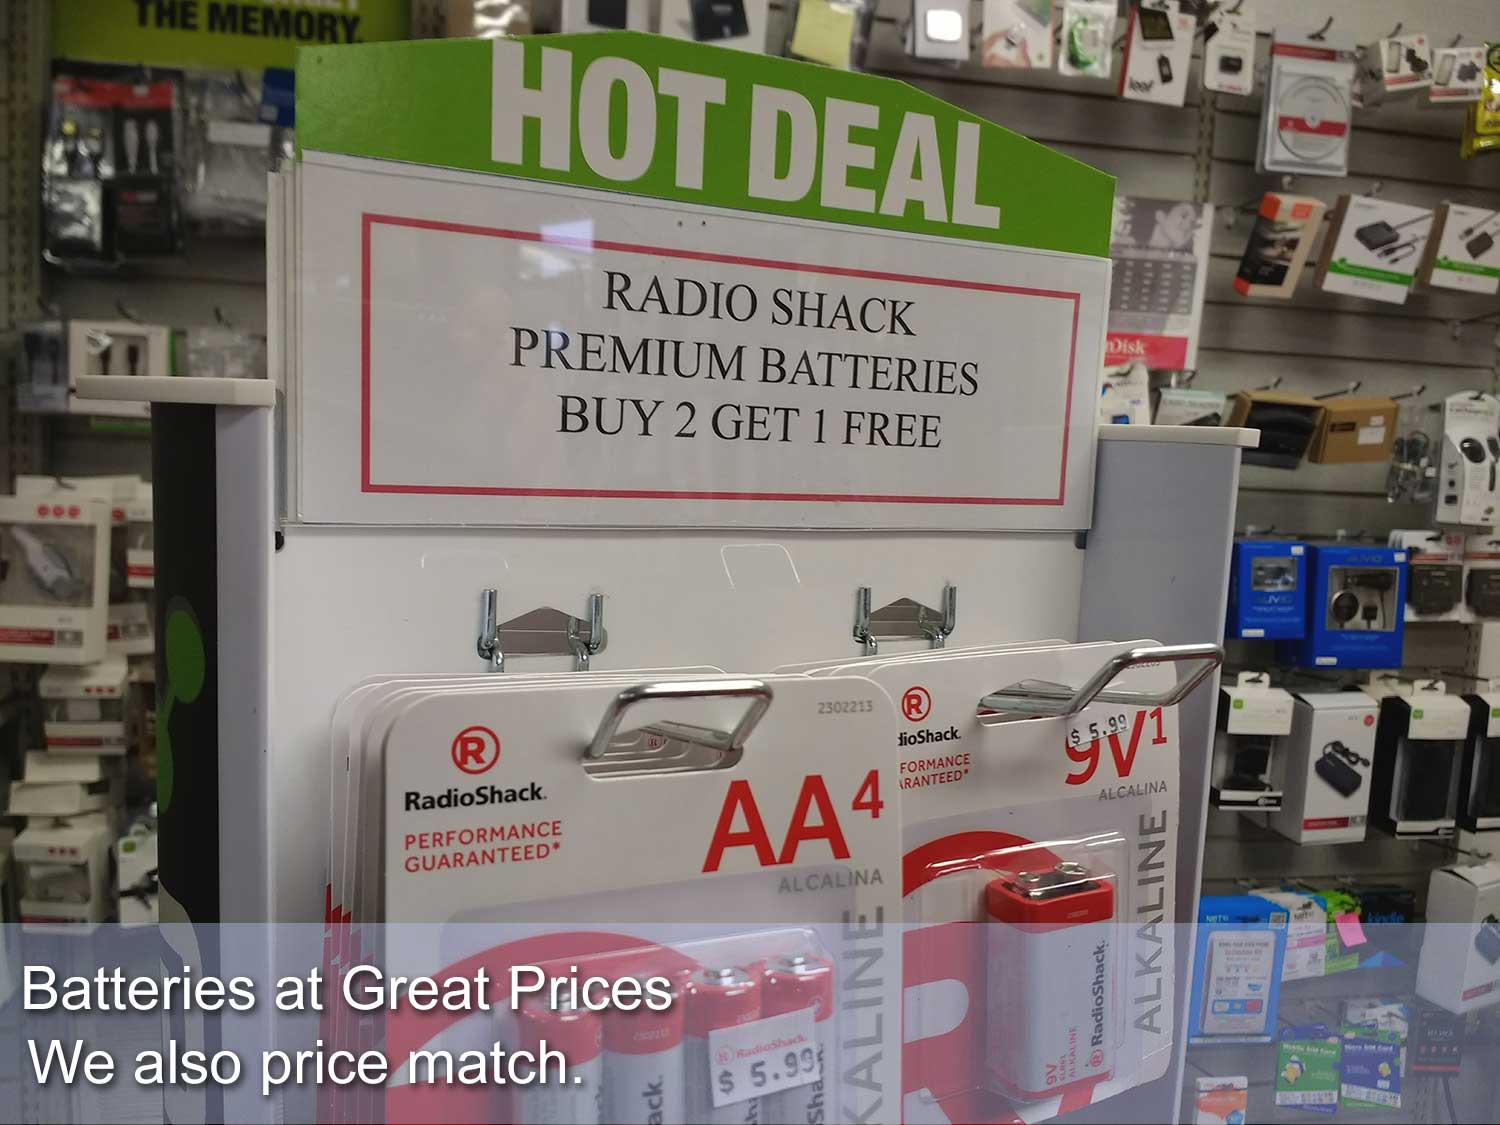 We have batteries at great prices with a price match. Bring a competitor's ad and we'll match the price.